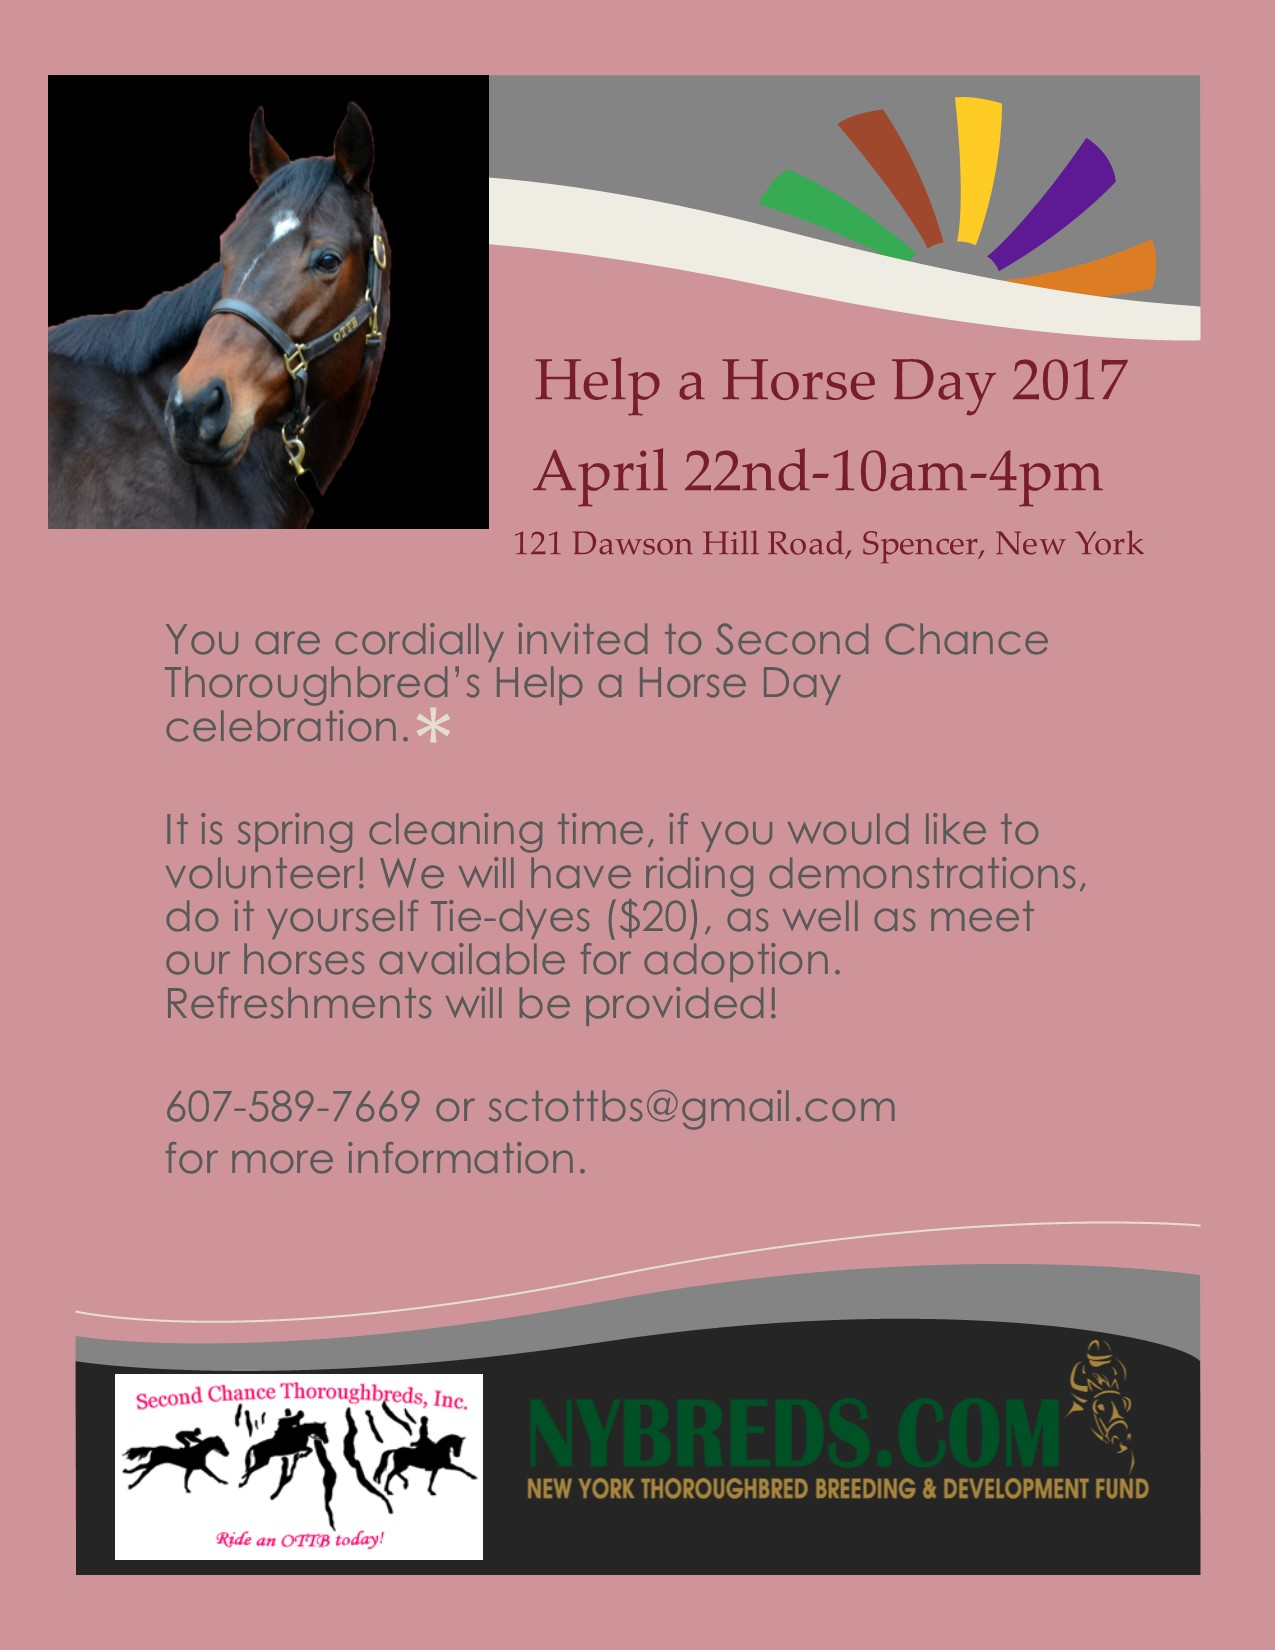 Help a Horse Day 2017 - April 22, 10-4